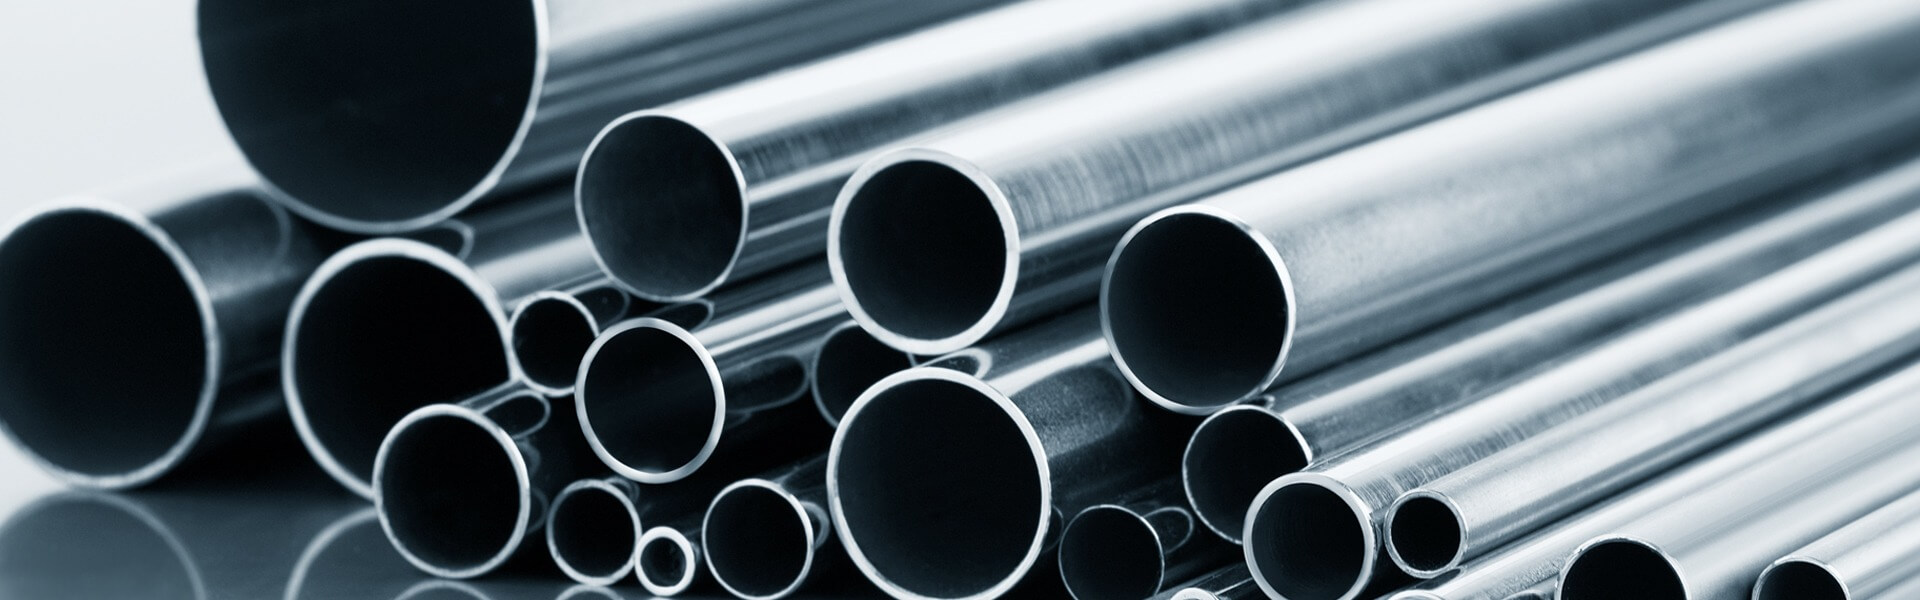 Pipes & Tubes Manufacturer & Exporter